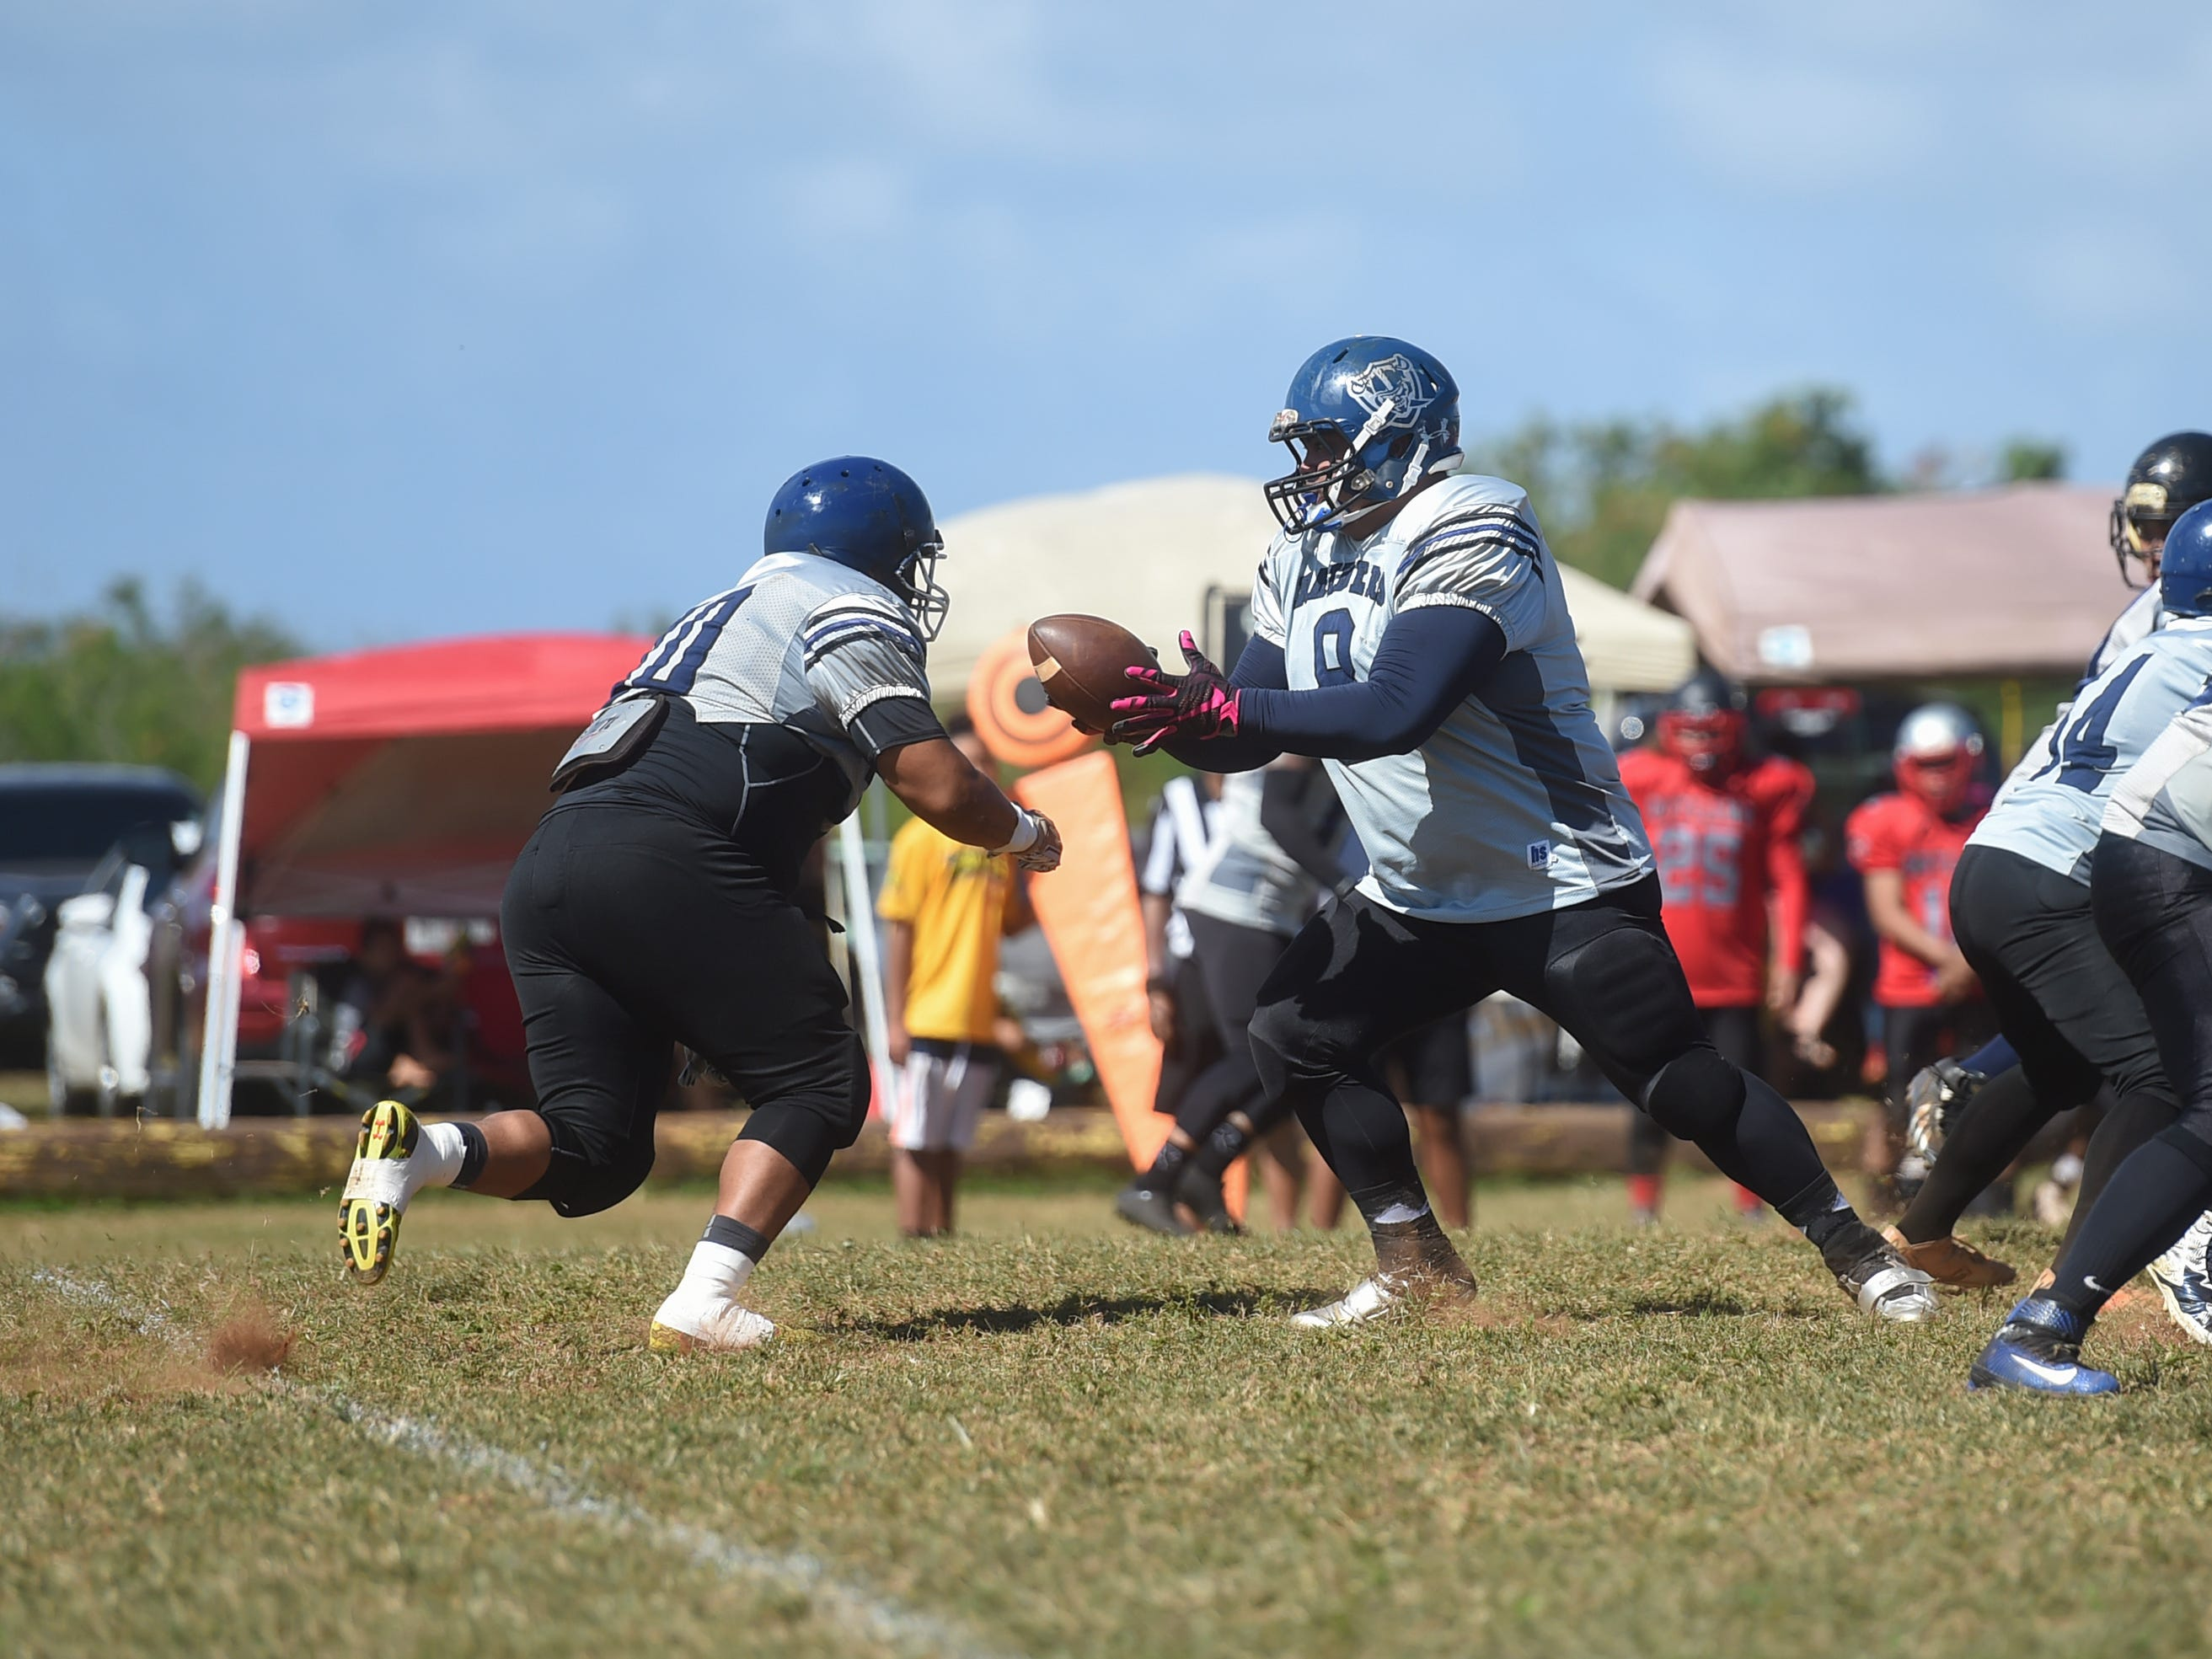 Guam Raiders player Danny Manibusan (8) attempts to make a handoff against the Outlaws during their Budweiser Guahan Varsity Football League game at Eagles Field in Mangilao, Feb. 16, 2019.